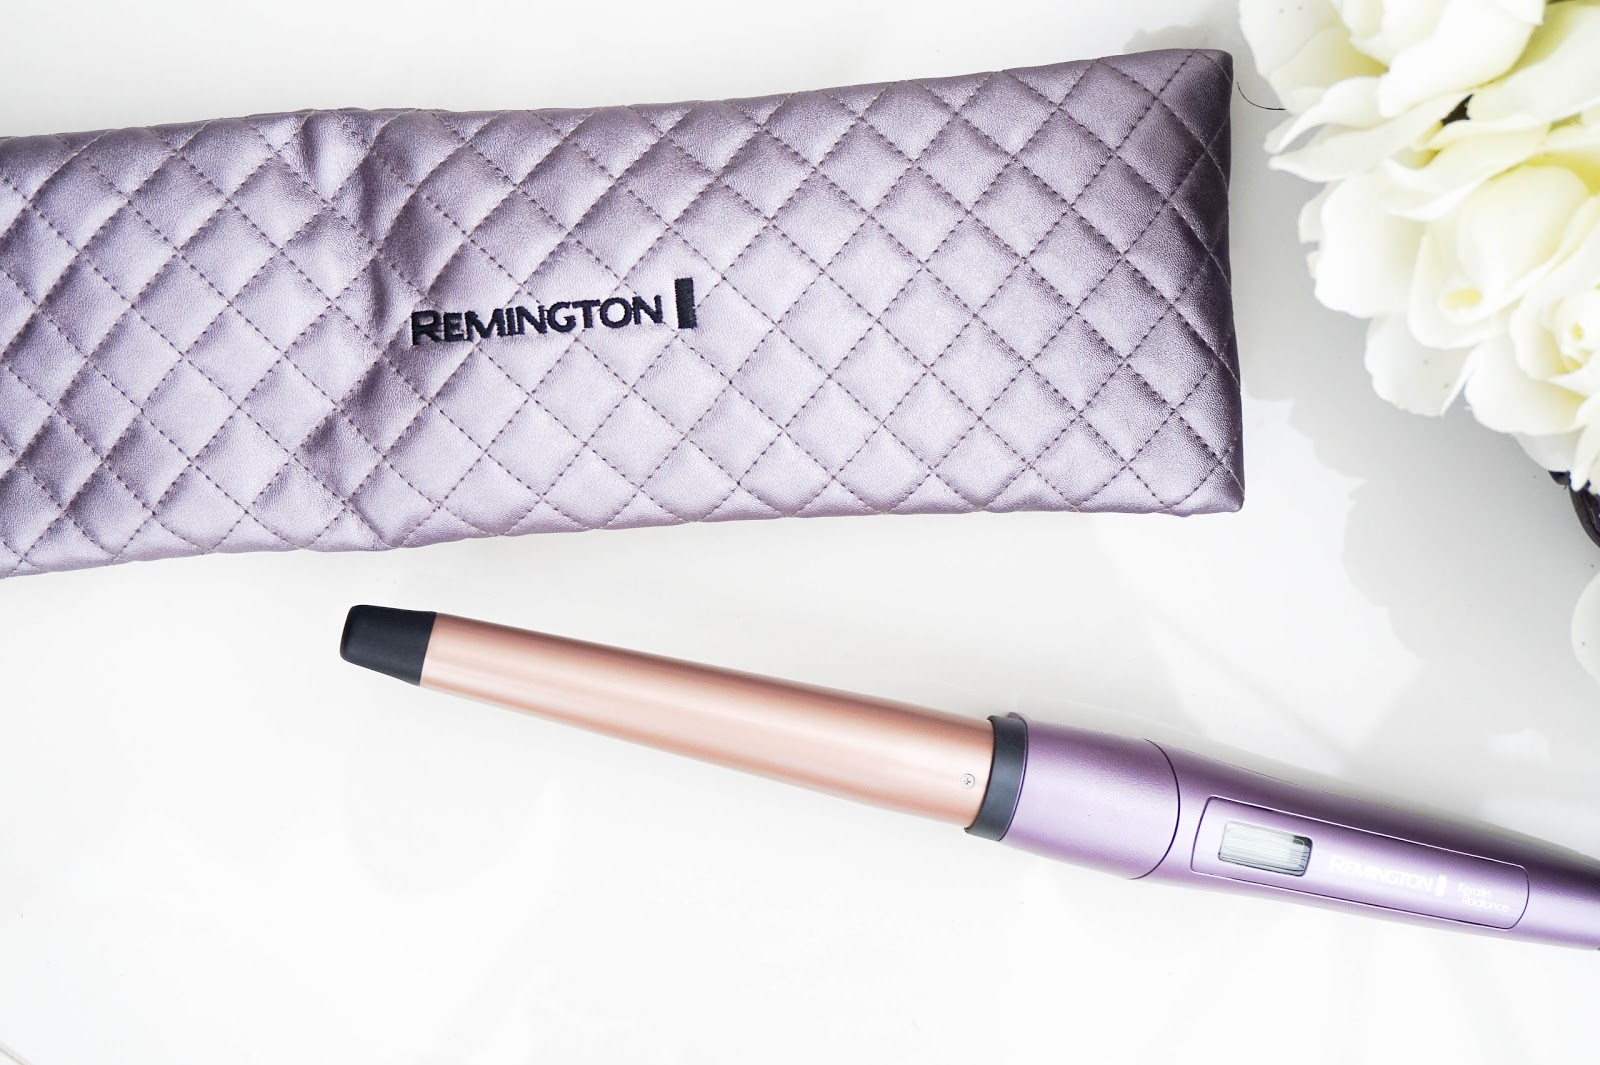 Remington Keratin Radiance Collection